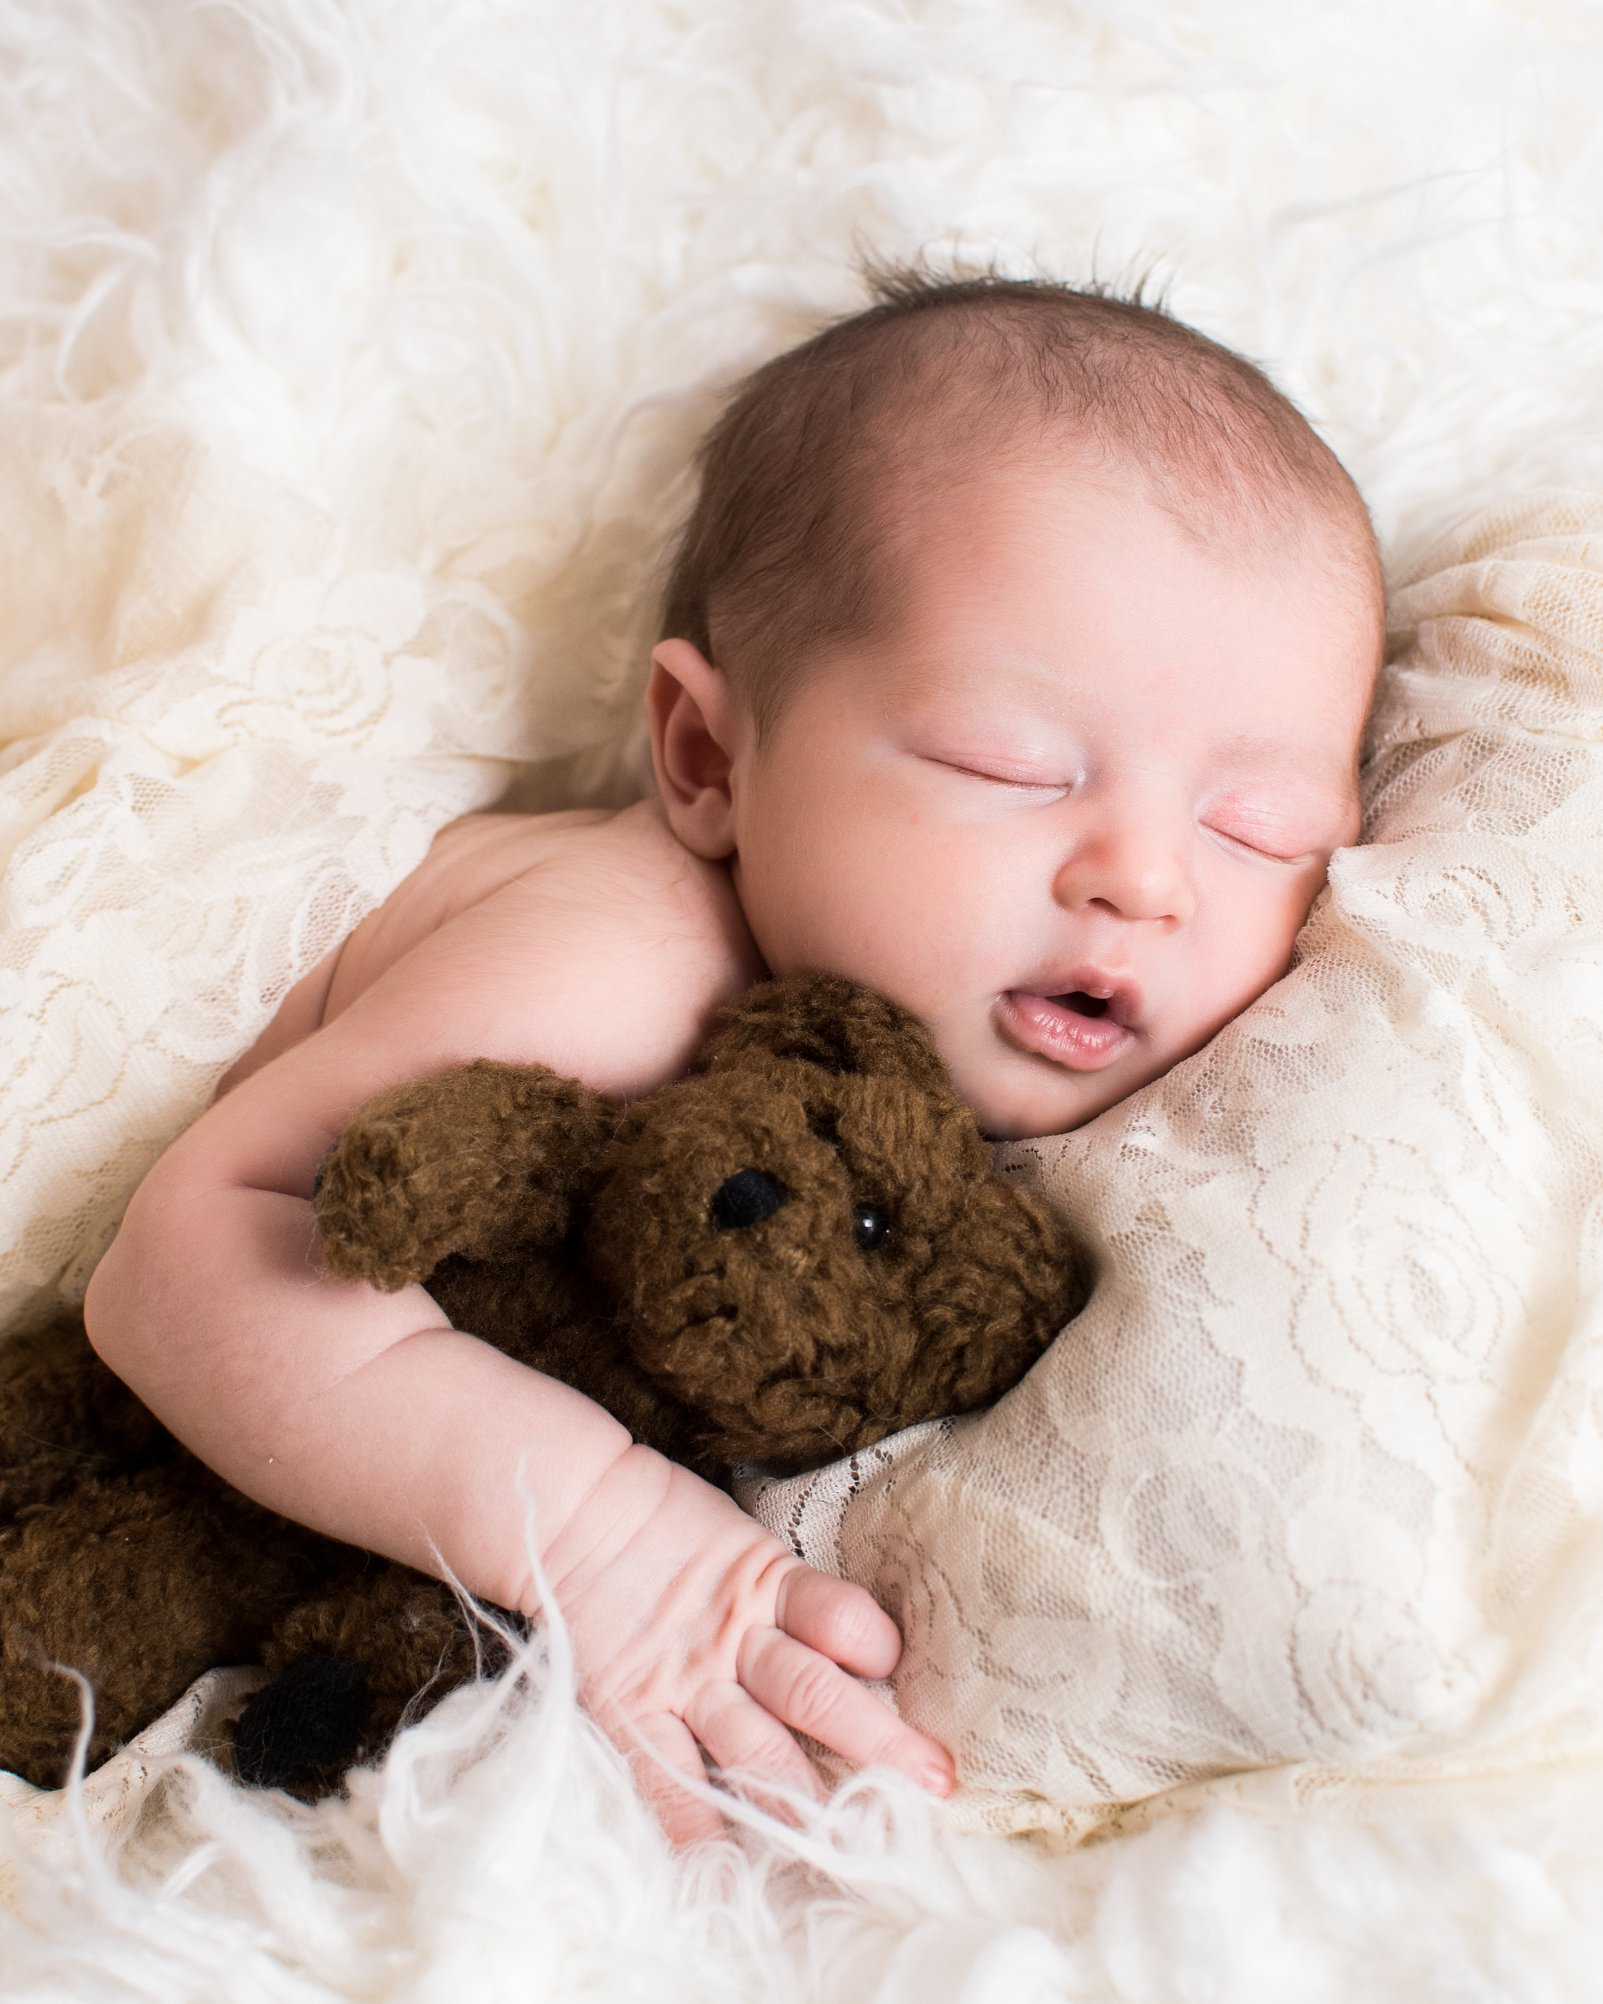 Kyla Jo Photography // Muncie, Indiana // Newborn Photos // Newborn Session // Muncie indiana newborn session // Newborn photographer muncie indiana // indiana newborn photographer // Teddy Bear in Newborn Photos